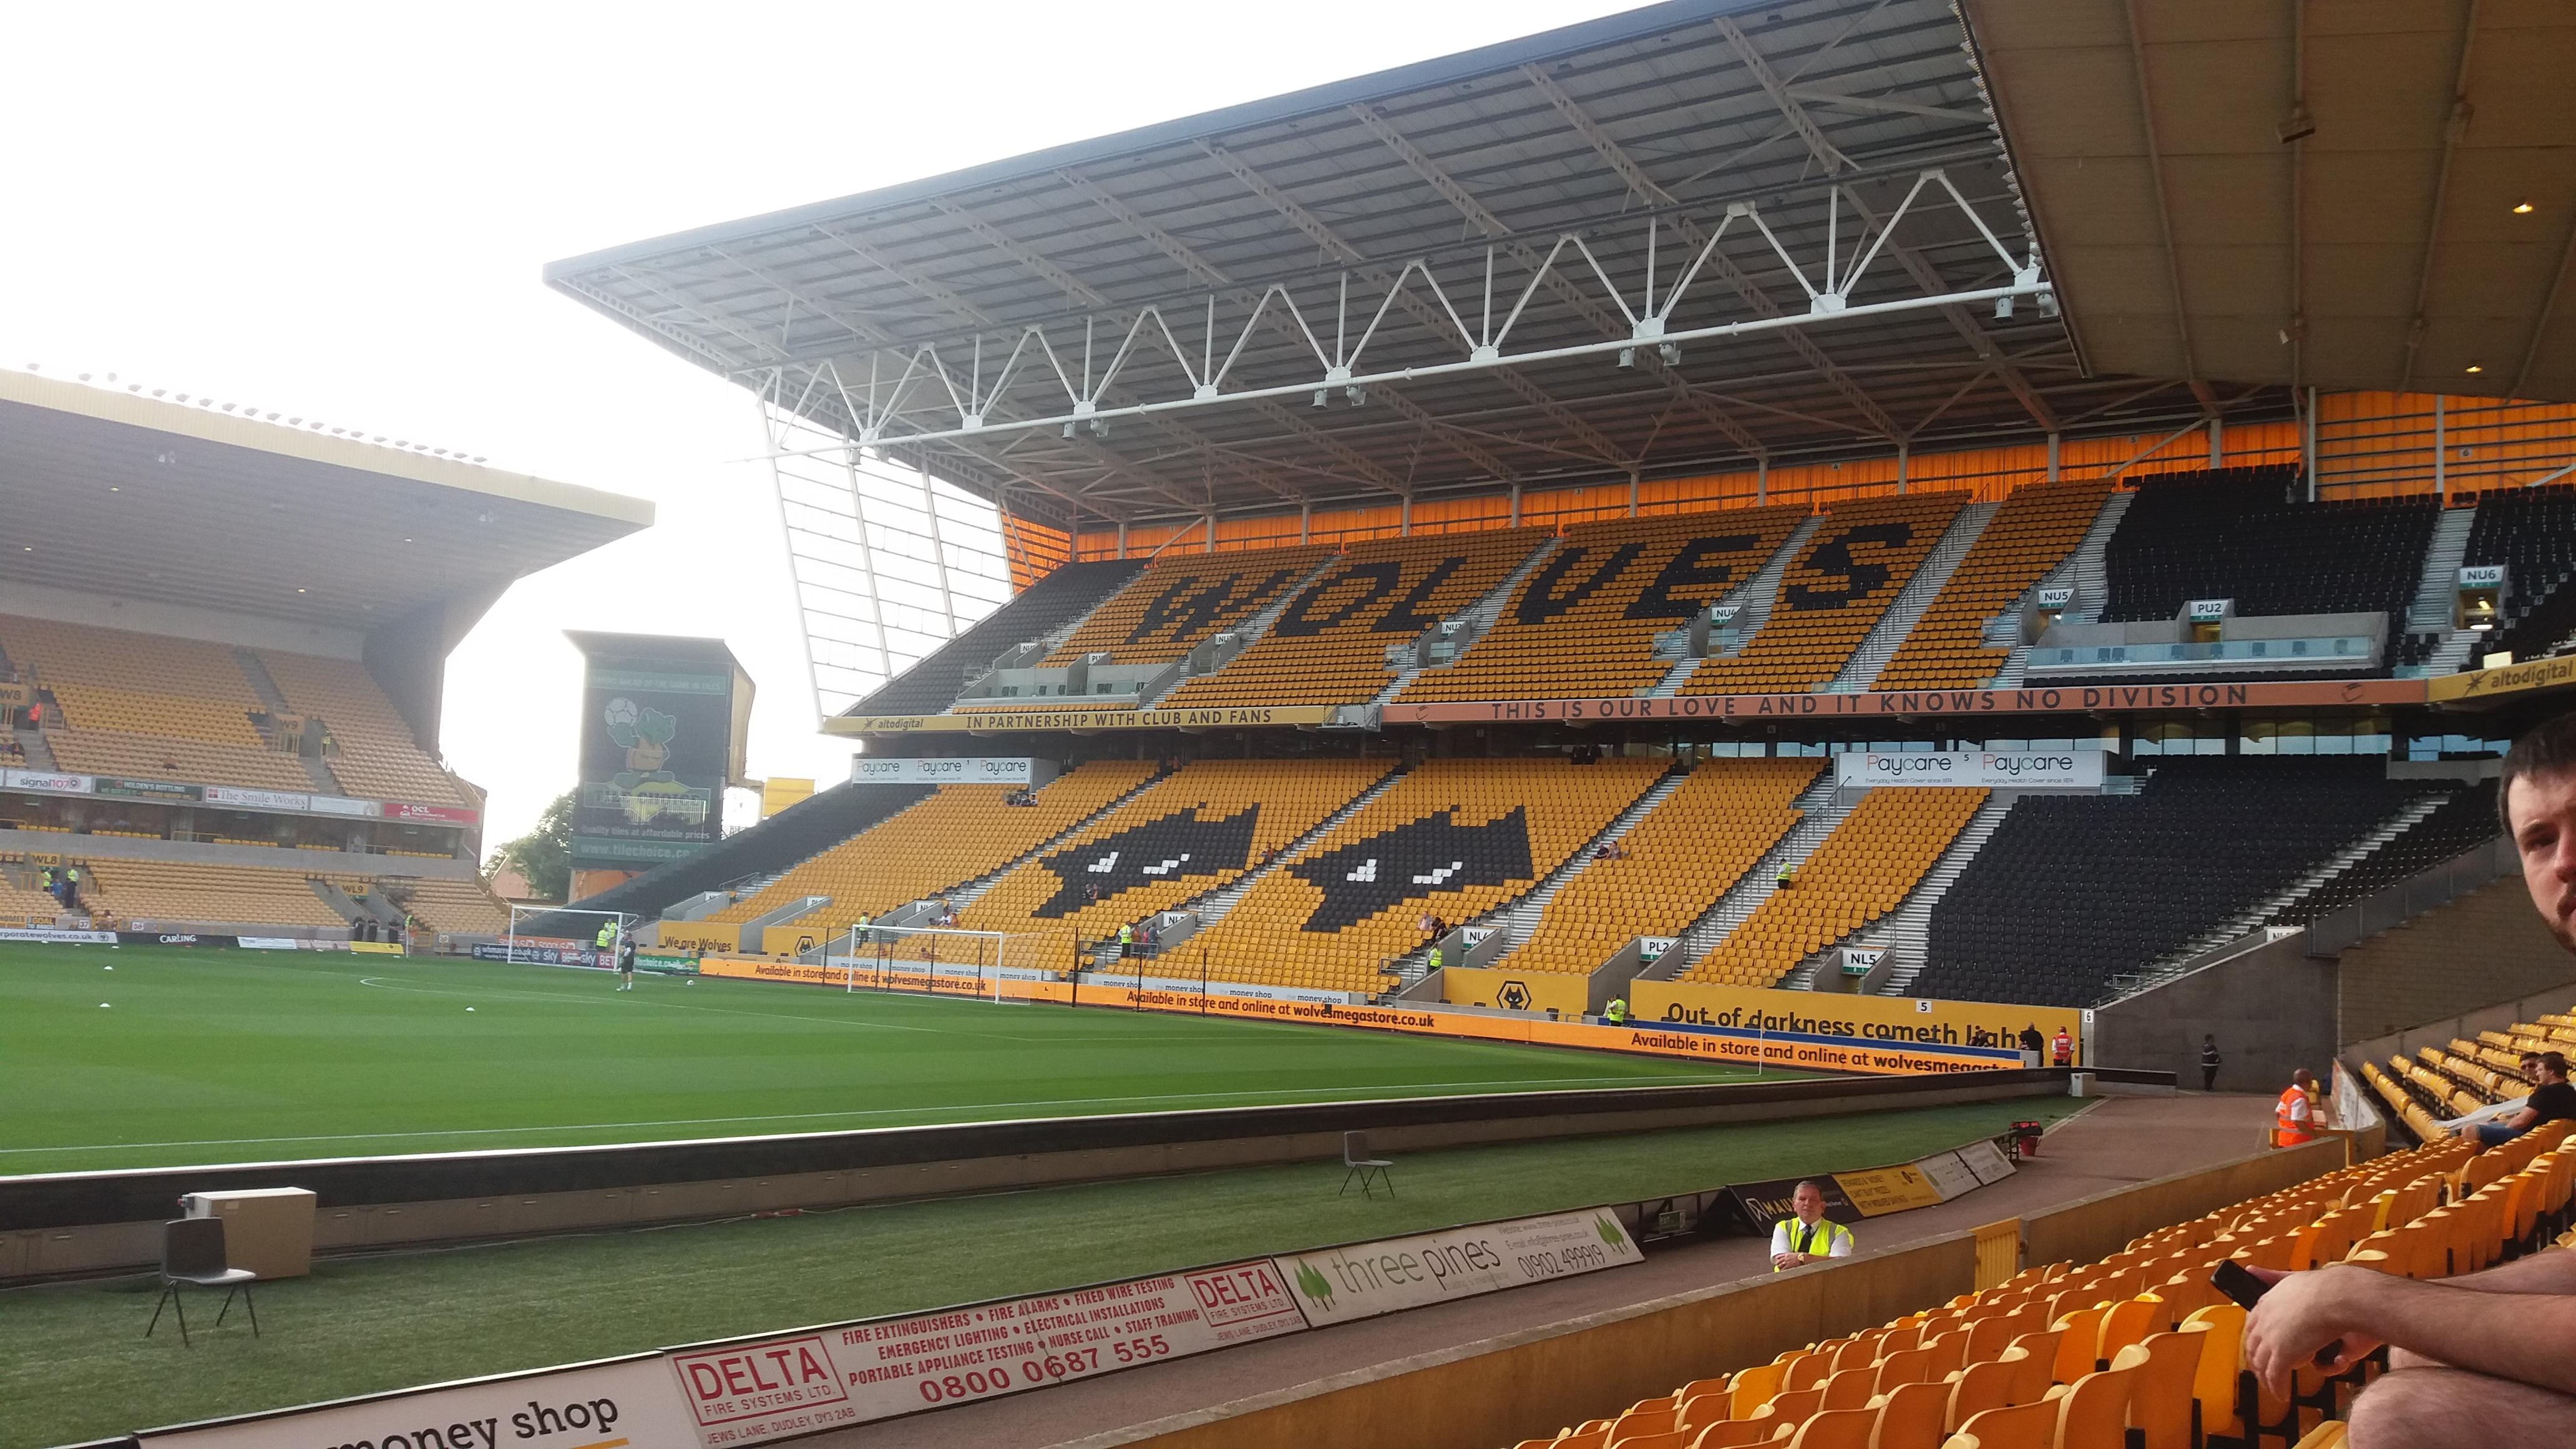 Molineux Stadium Section JL6 Row G Seat 160